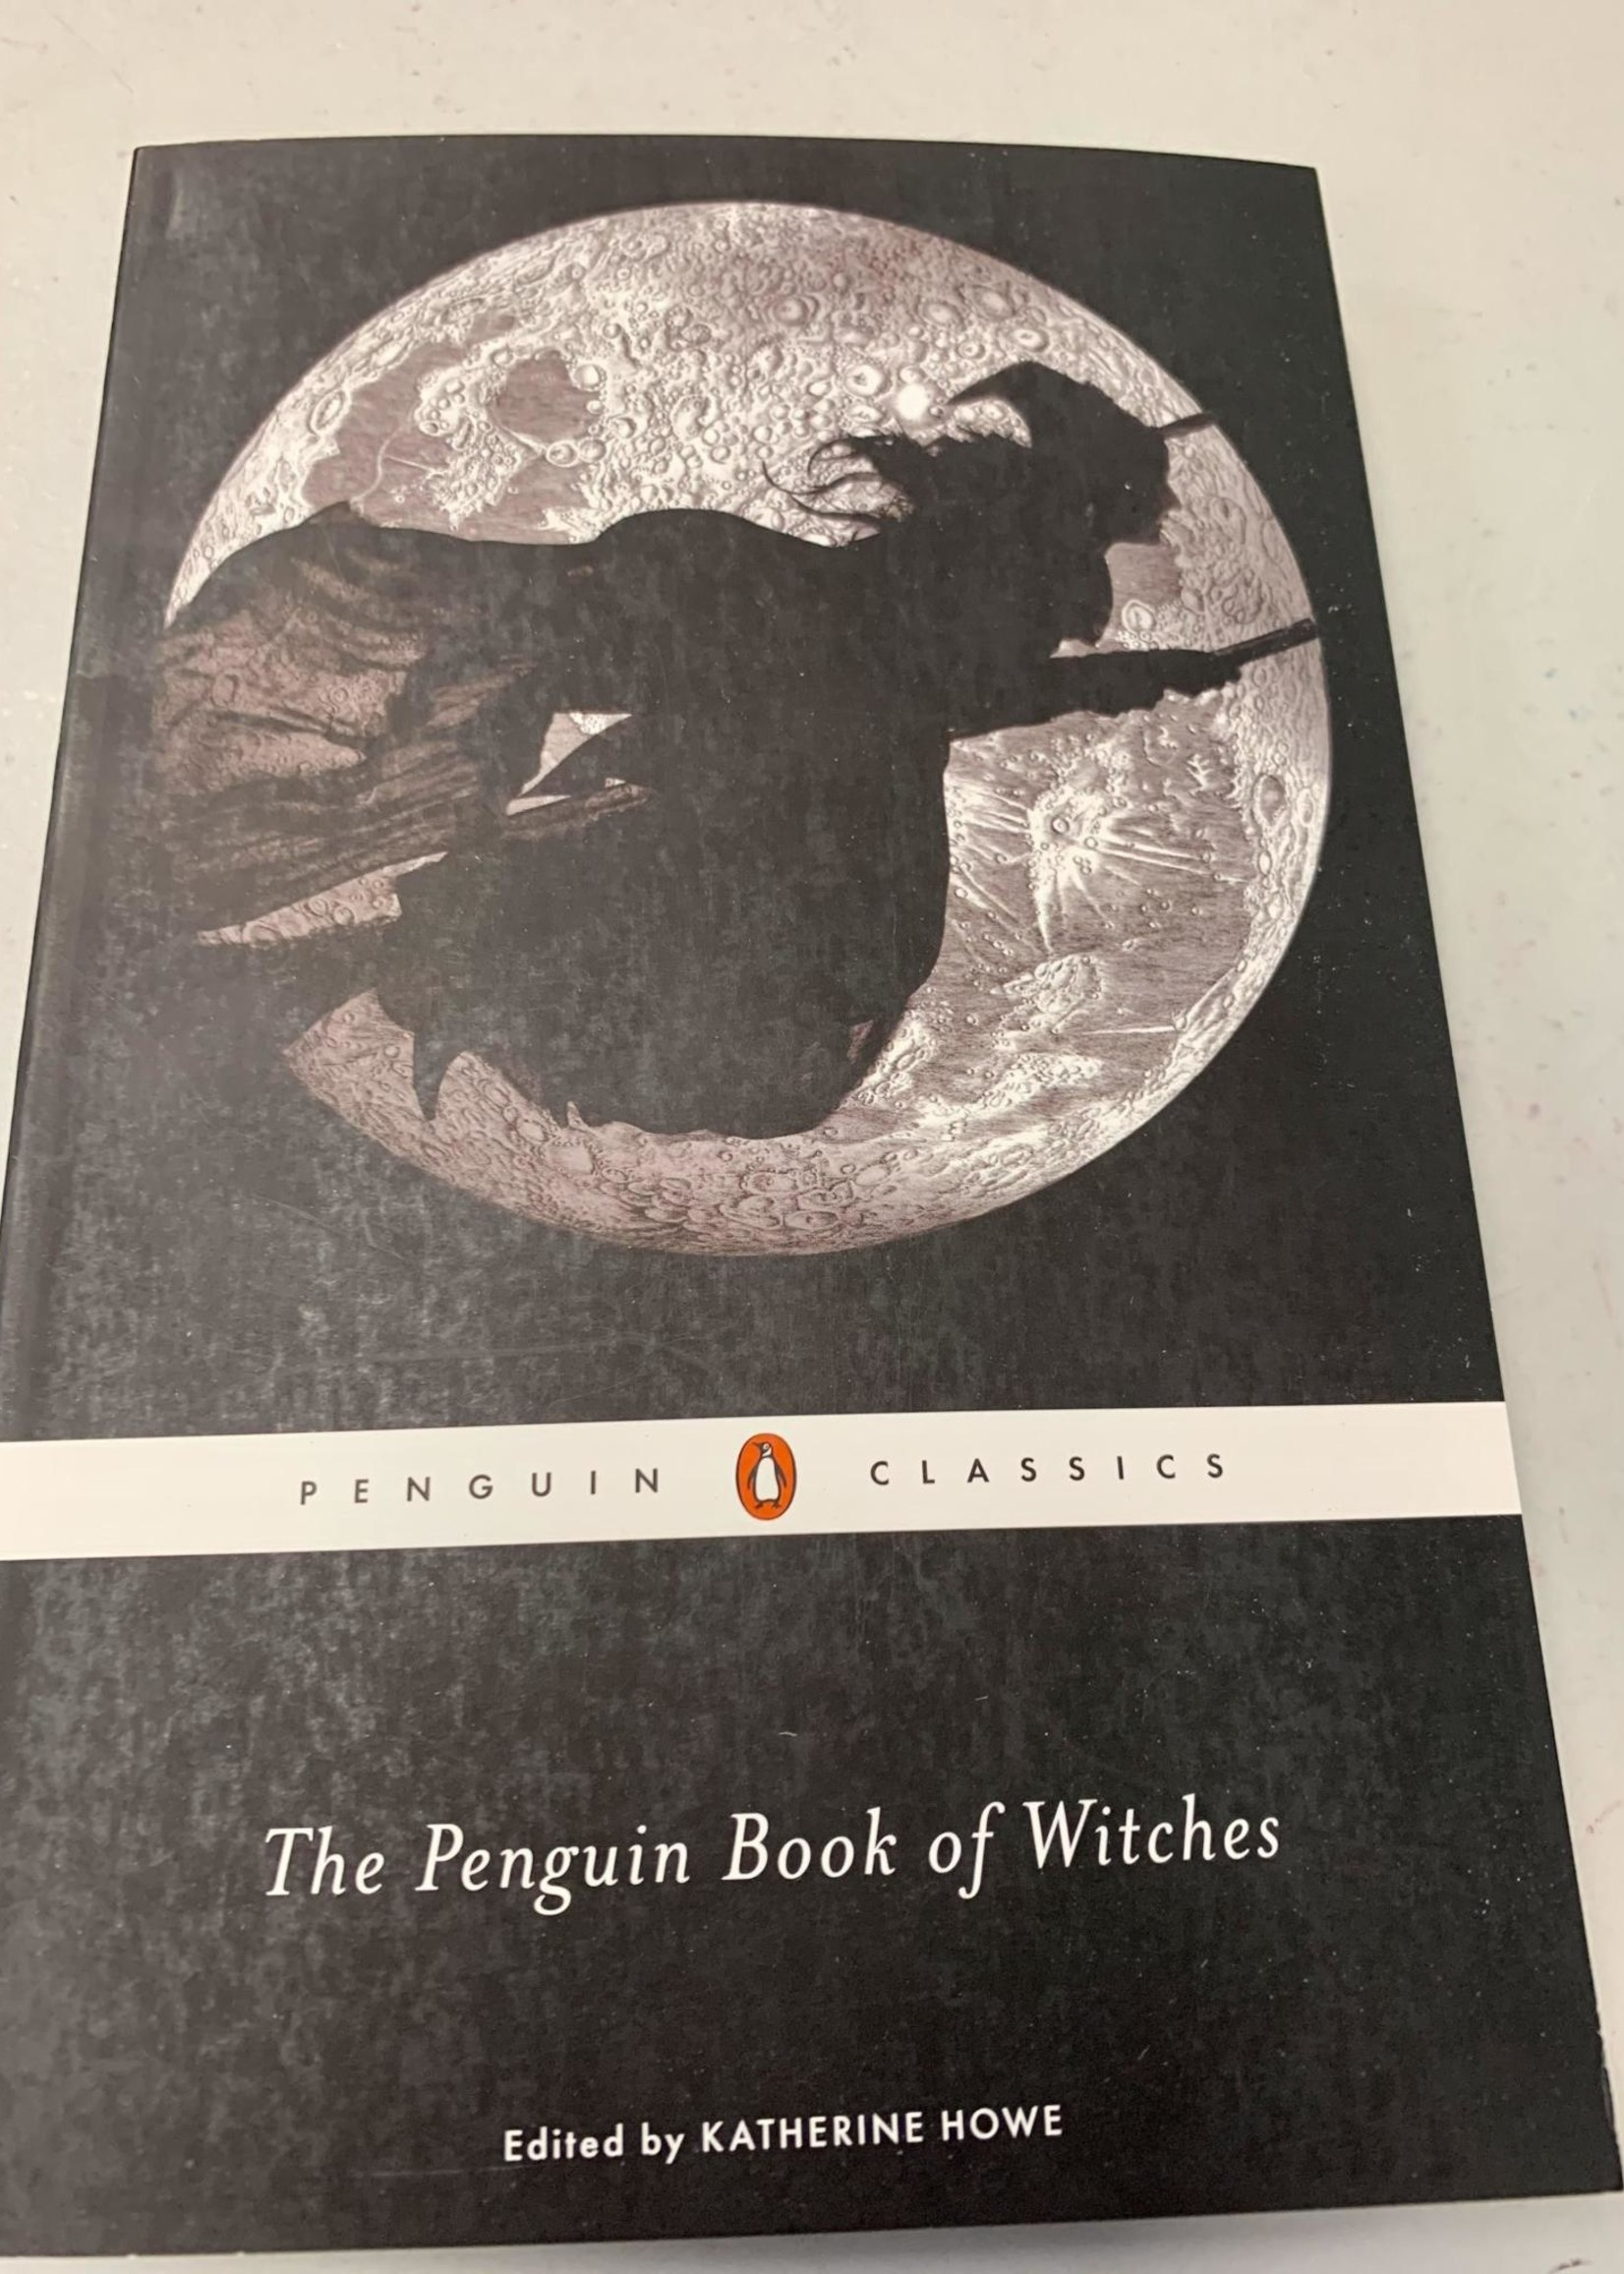 The Penguin Book of Witches Introduction - by Katherine Howe Edited by Katherine Howe Notes by Katherine Howe